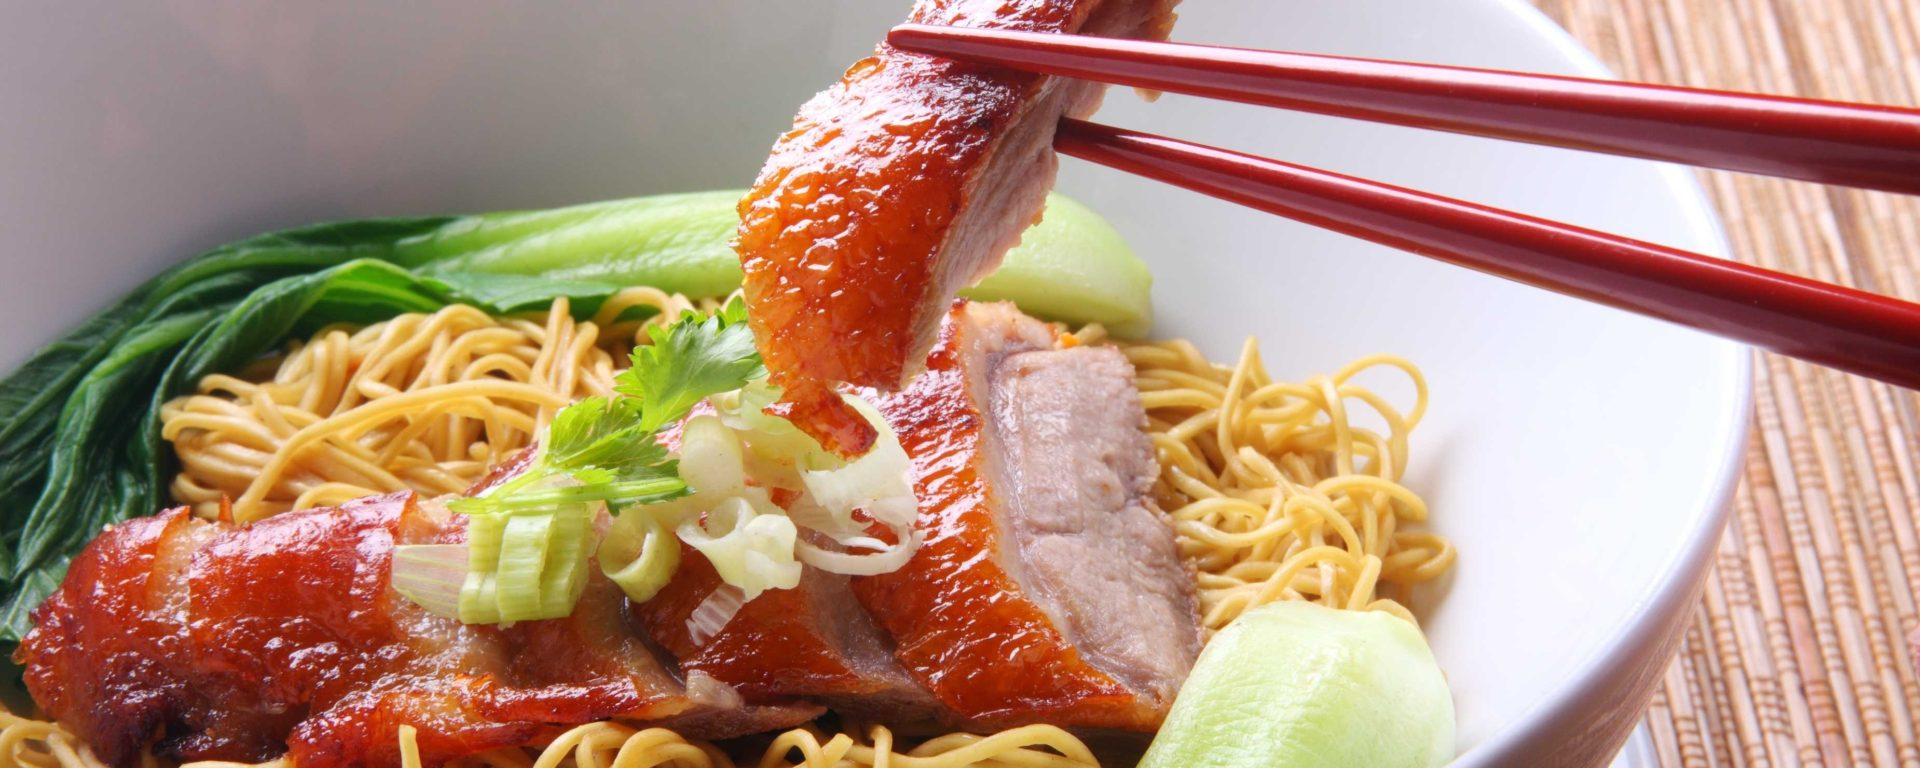 manage portions- pork noodles